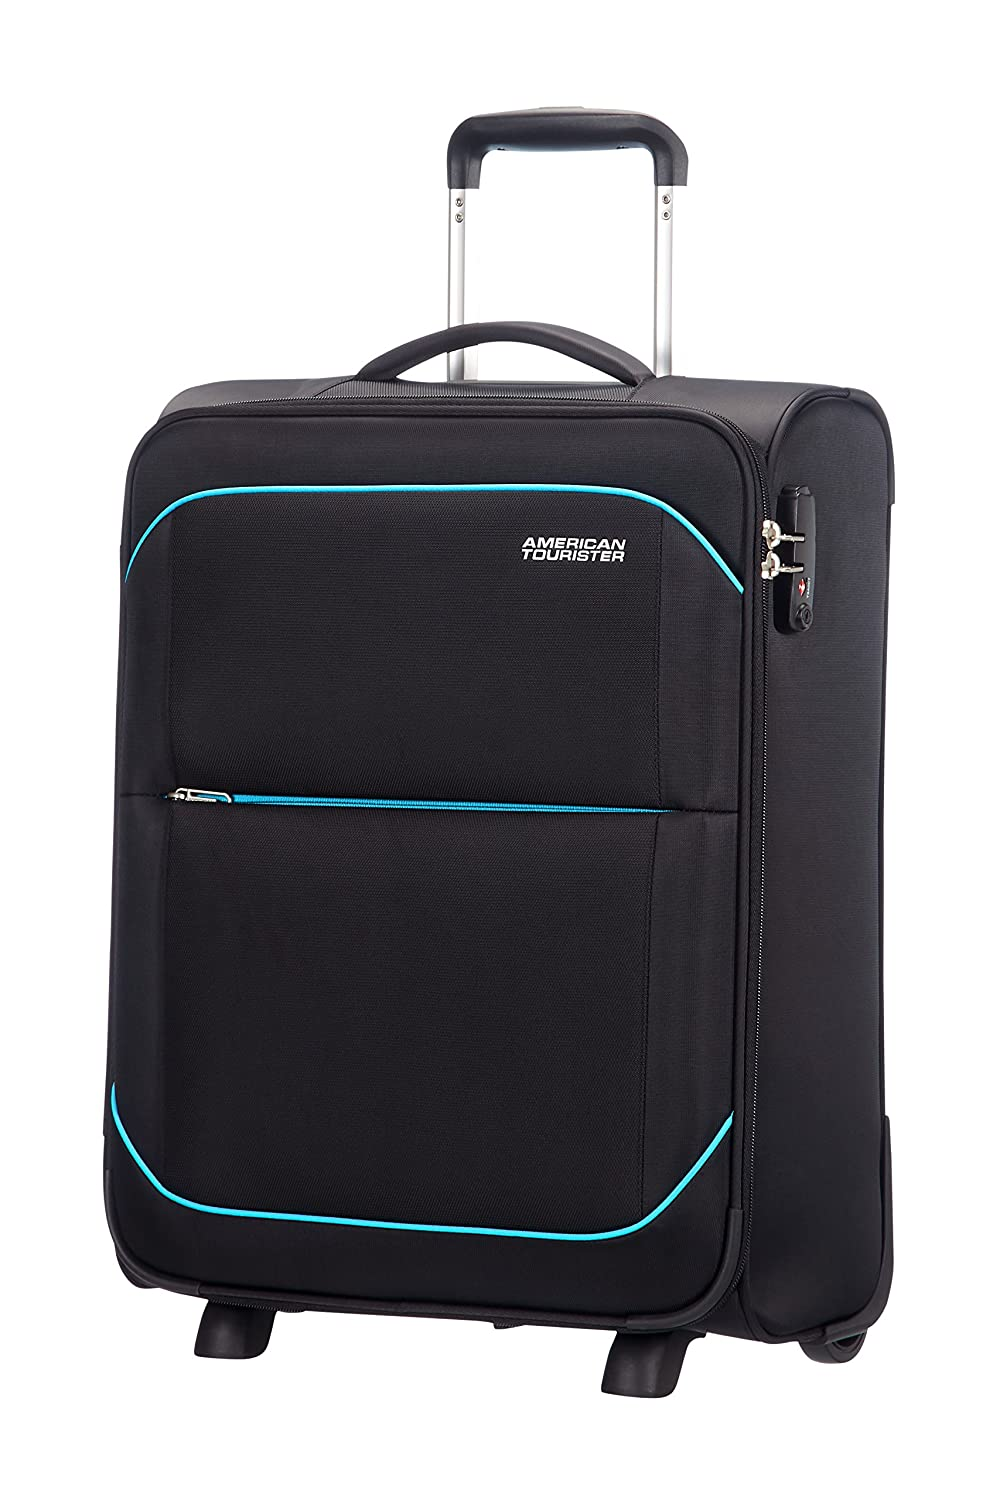 American Tourister Sunbeam upright ruedas  equipaje de mano negro after dark